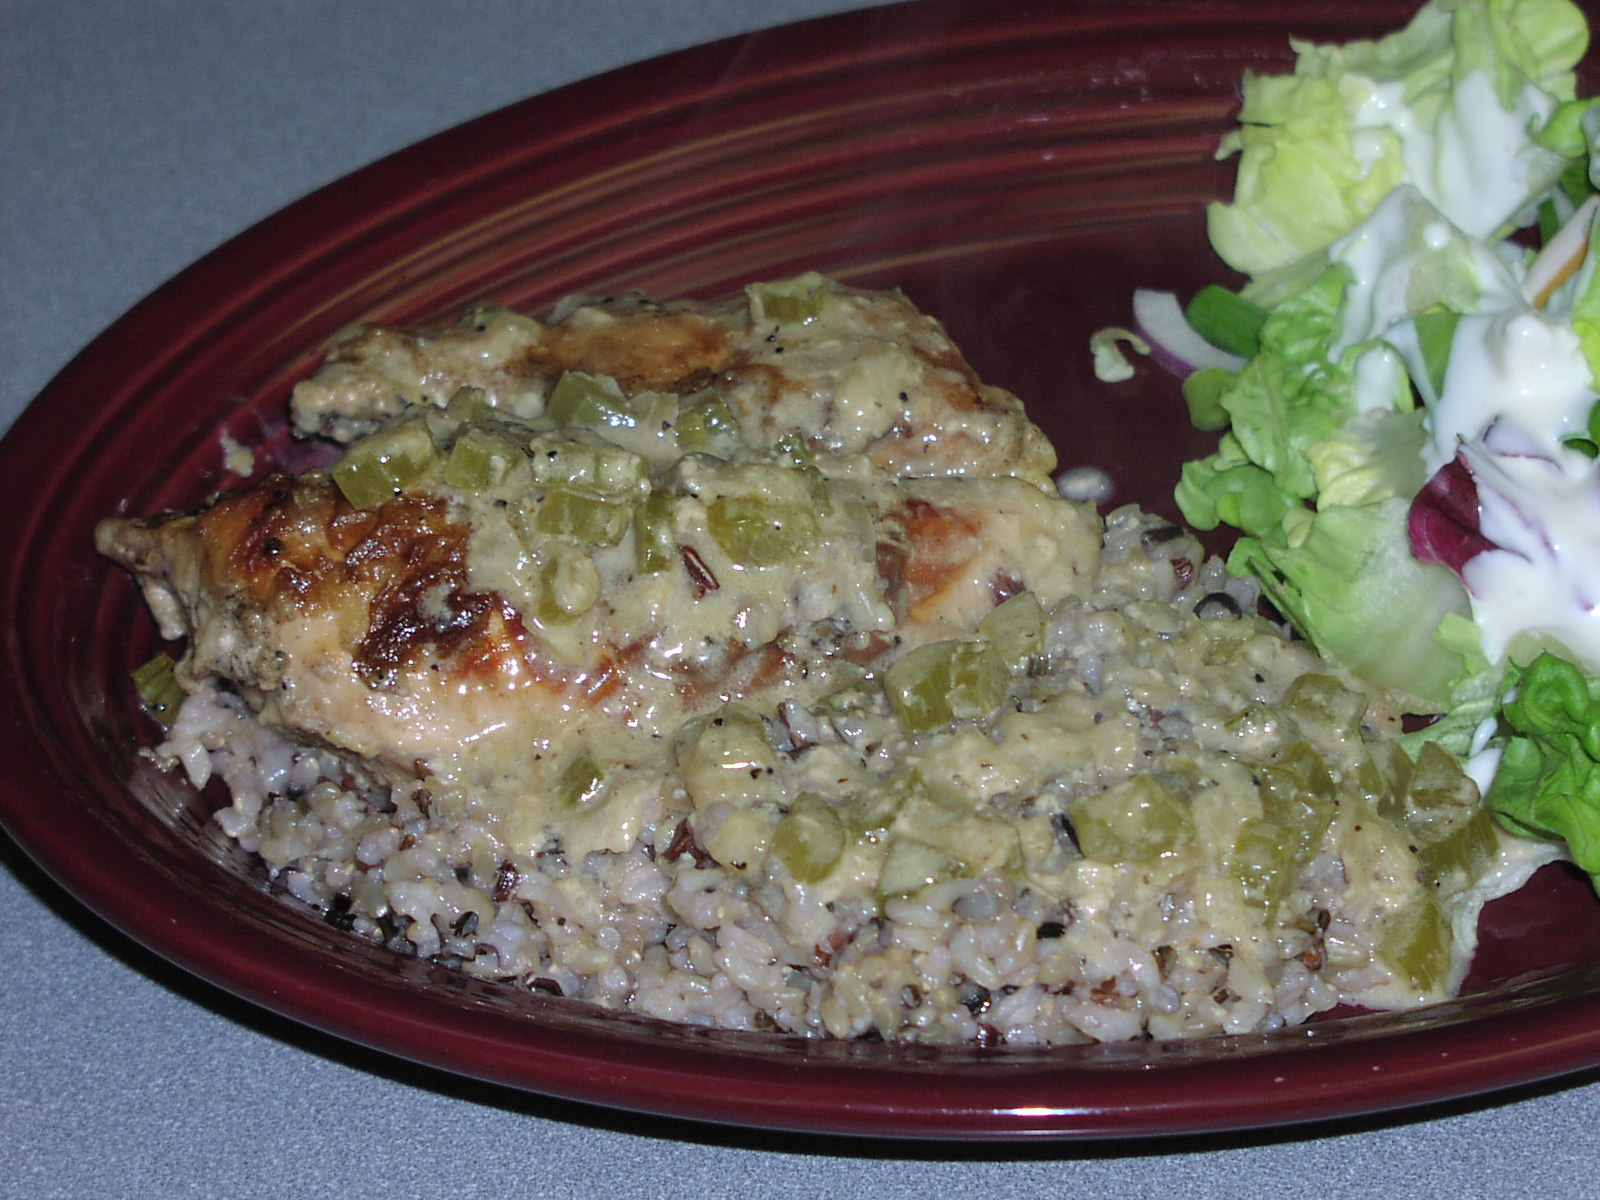 Pheasant recipes genius kitchen forumfinder Choice Image